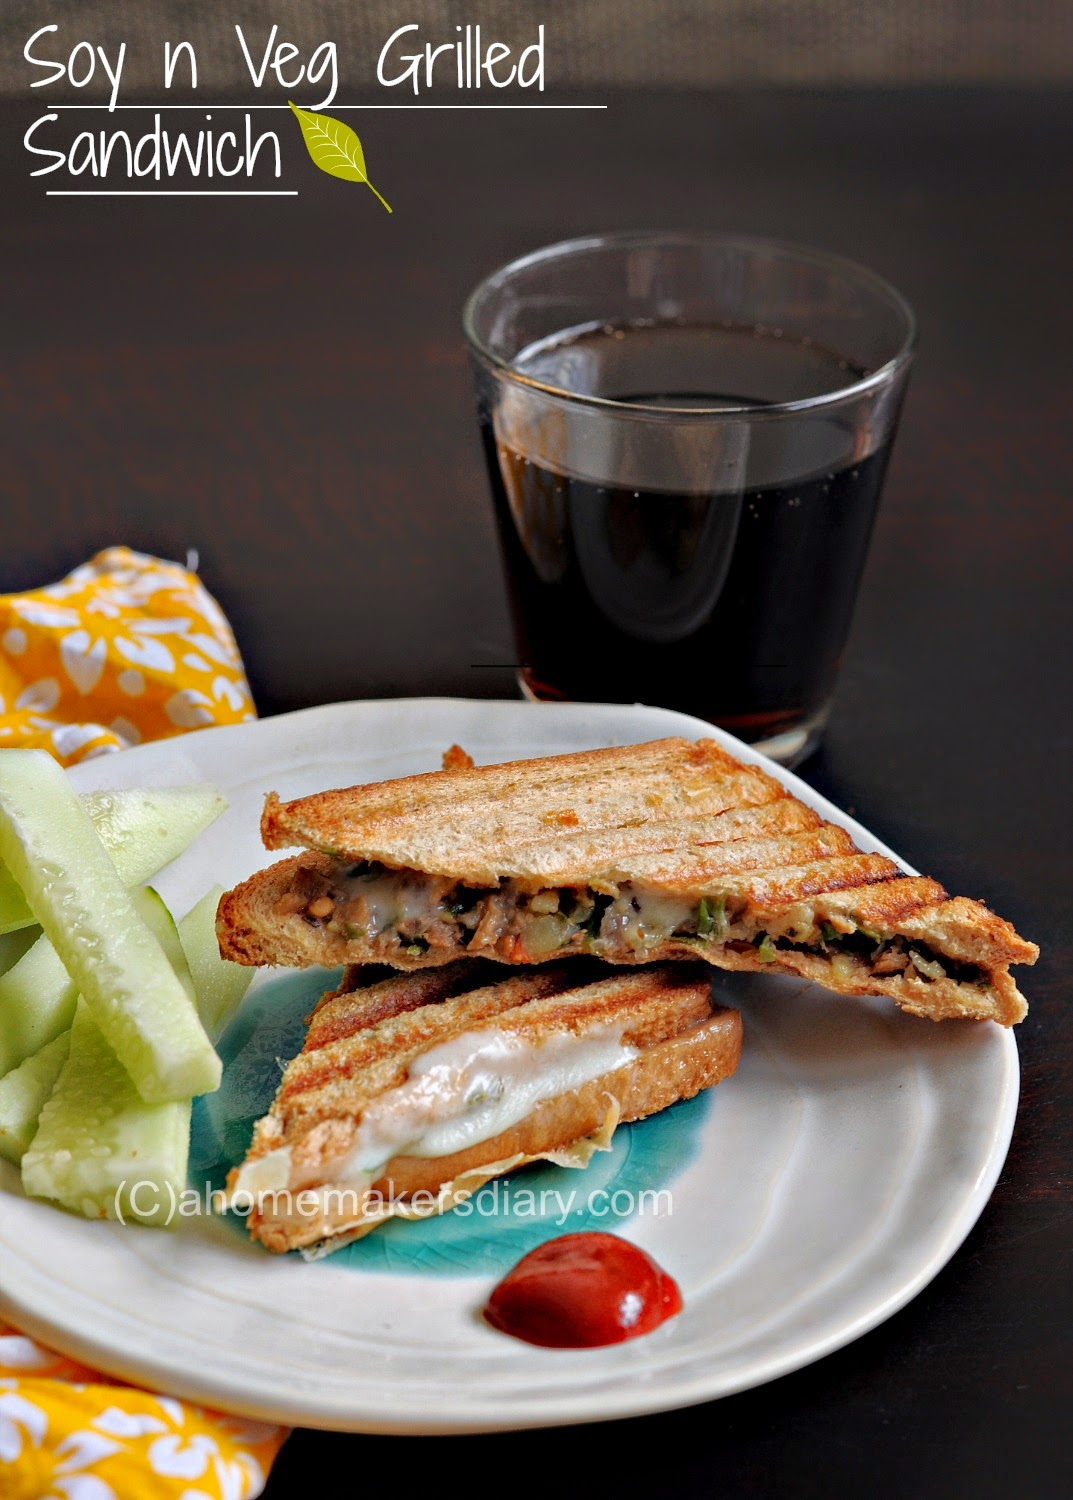 Soy, vegetable and cheese Grilled sandwich